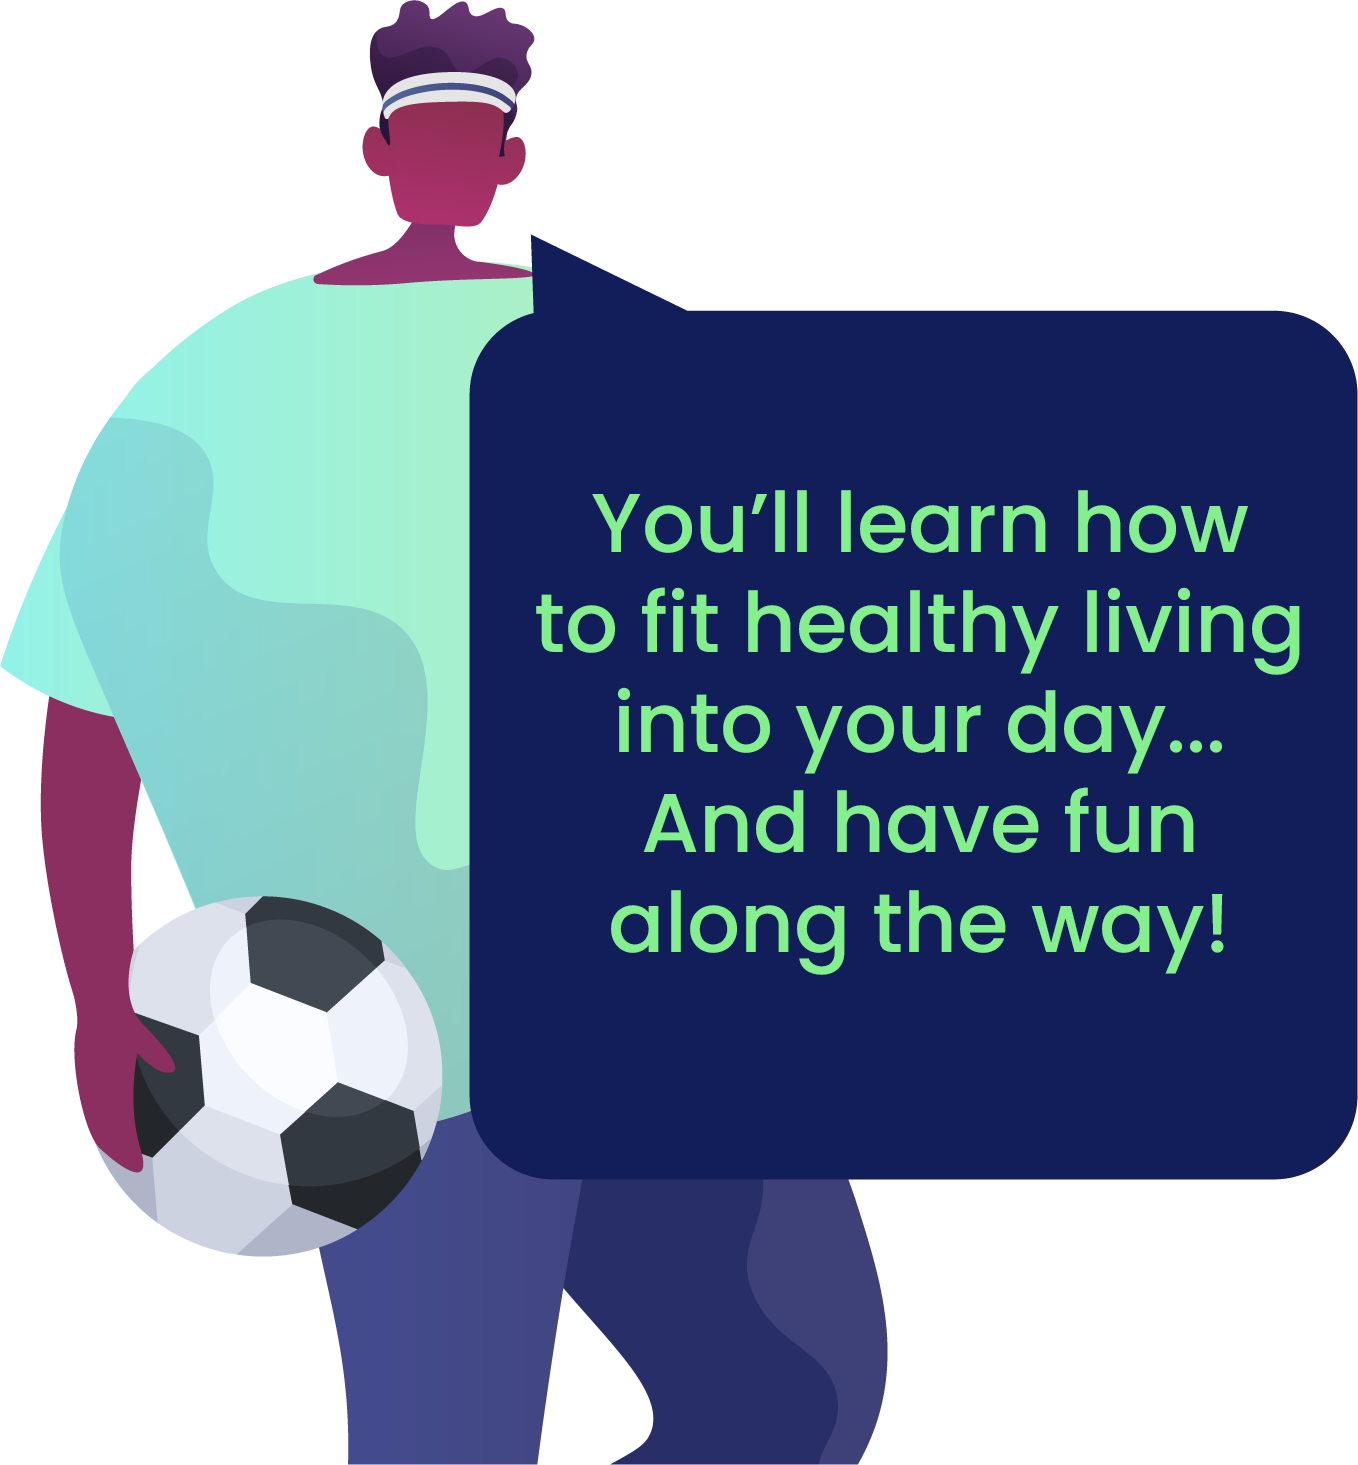 You'll learn how to fit healthy living into your day...And have fun along the way!